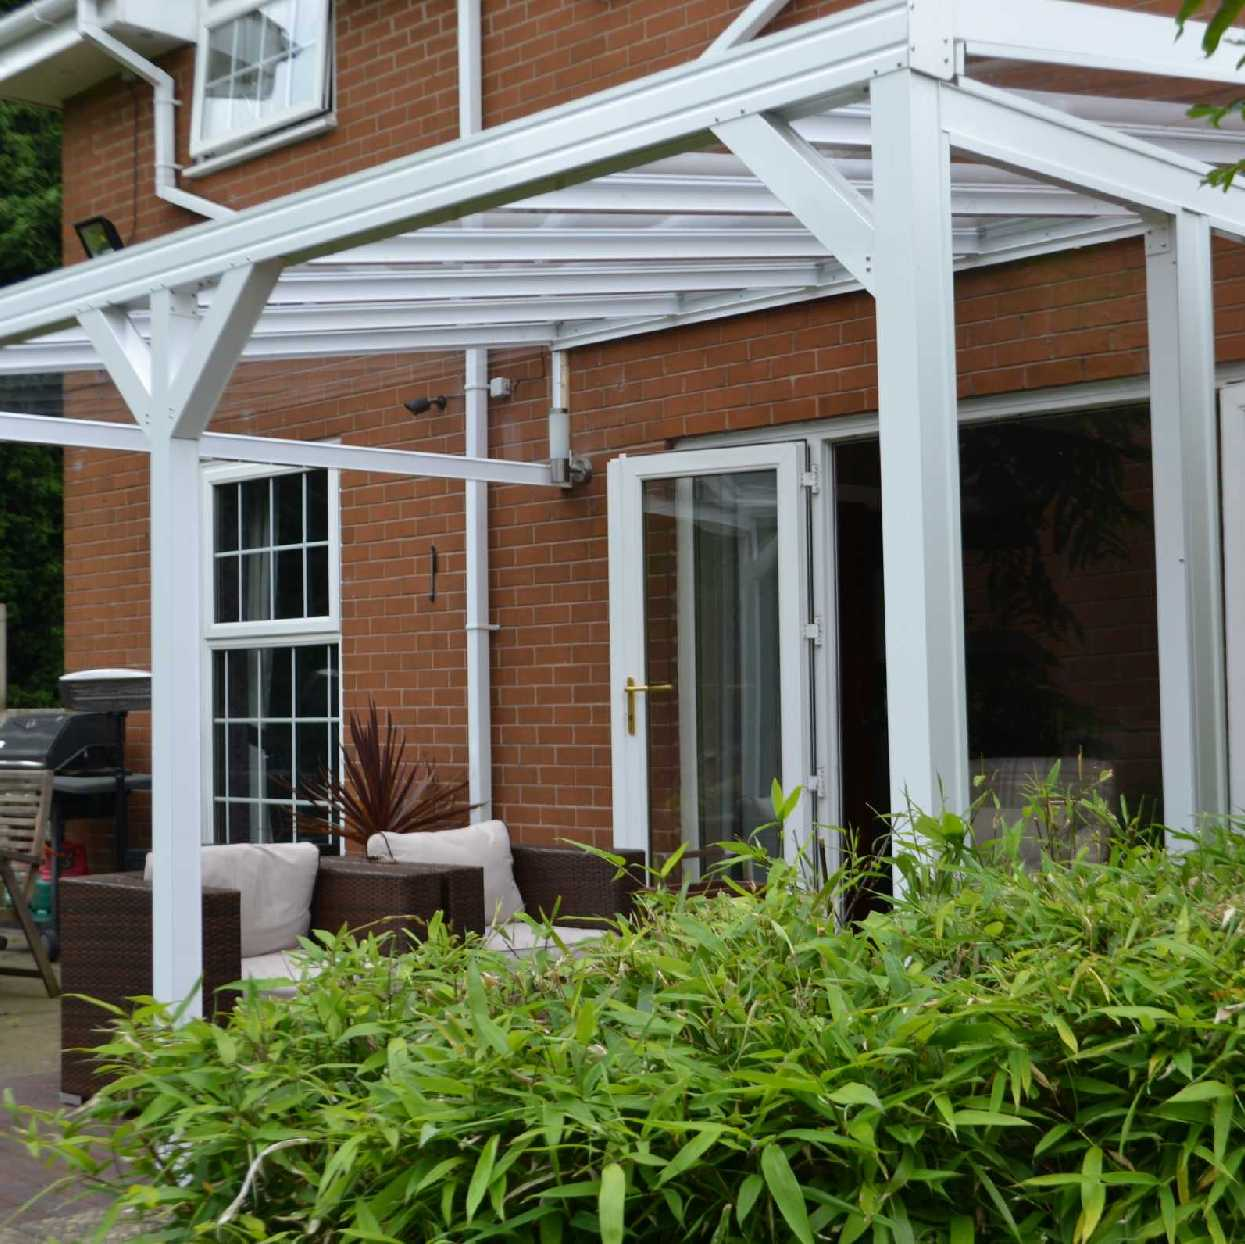 Omega Smart White Lean-To Canopy UNGLAZED for 6mm Glazing - 6.3m (W) x 2.0m (P), (4) Supporting Posts from Omega Build